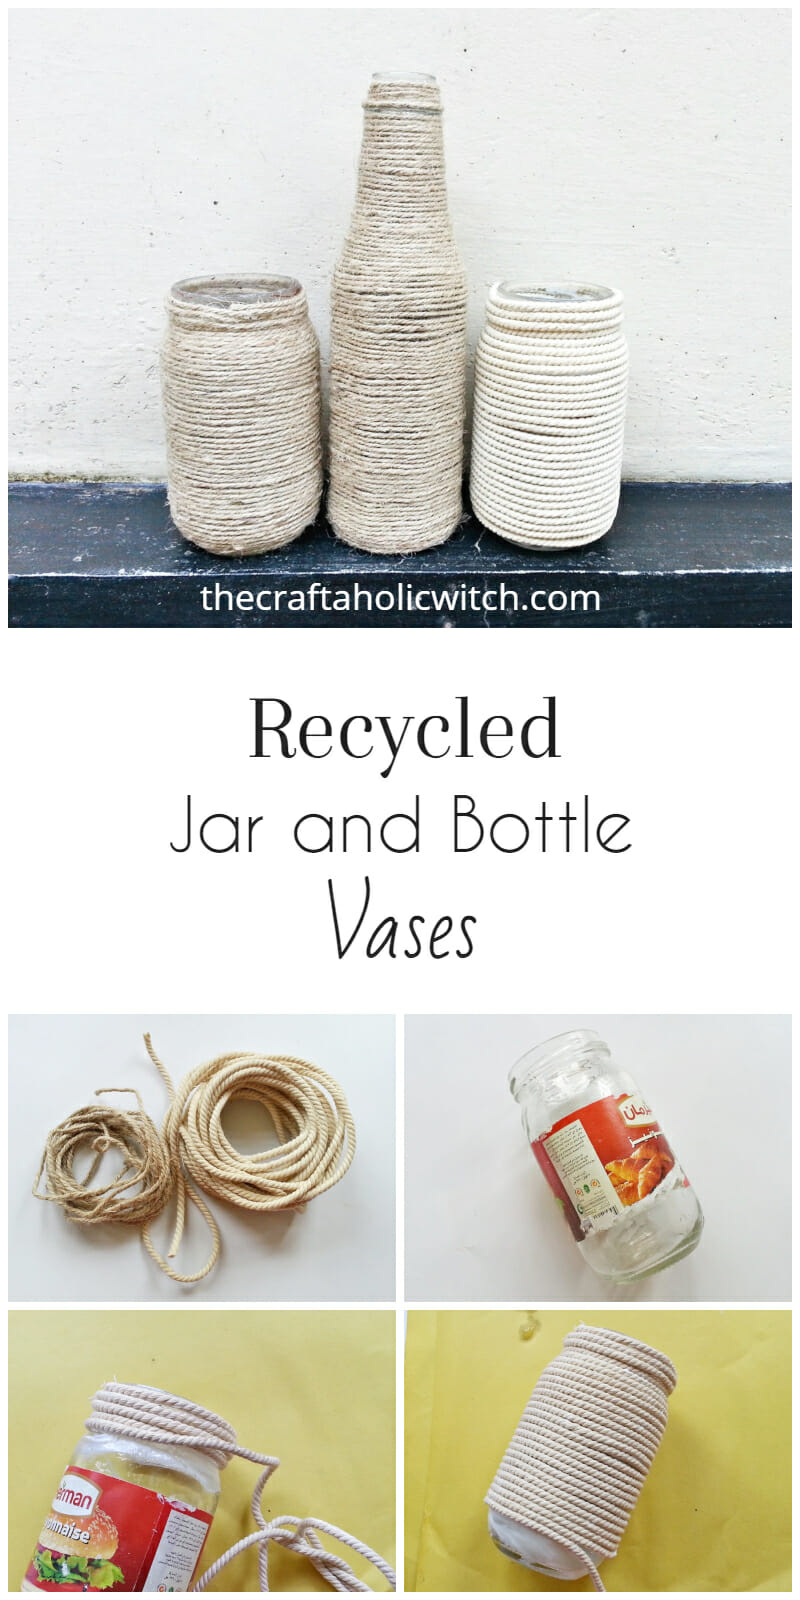 DIY Recycled Jar and Bottle Vases